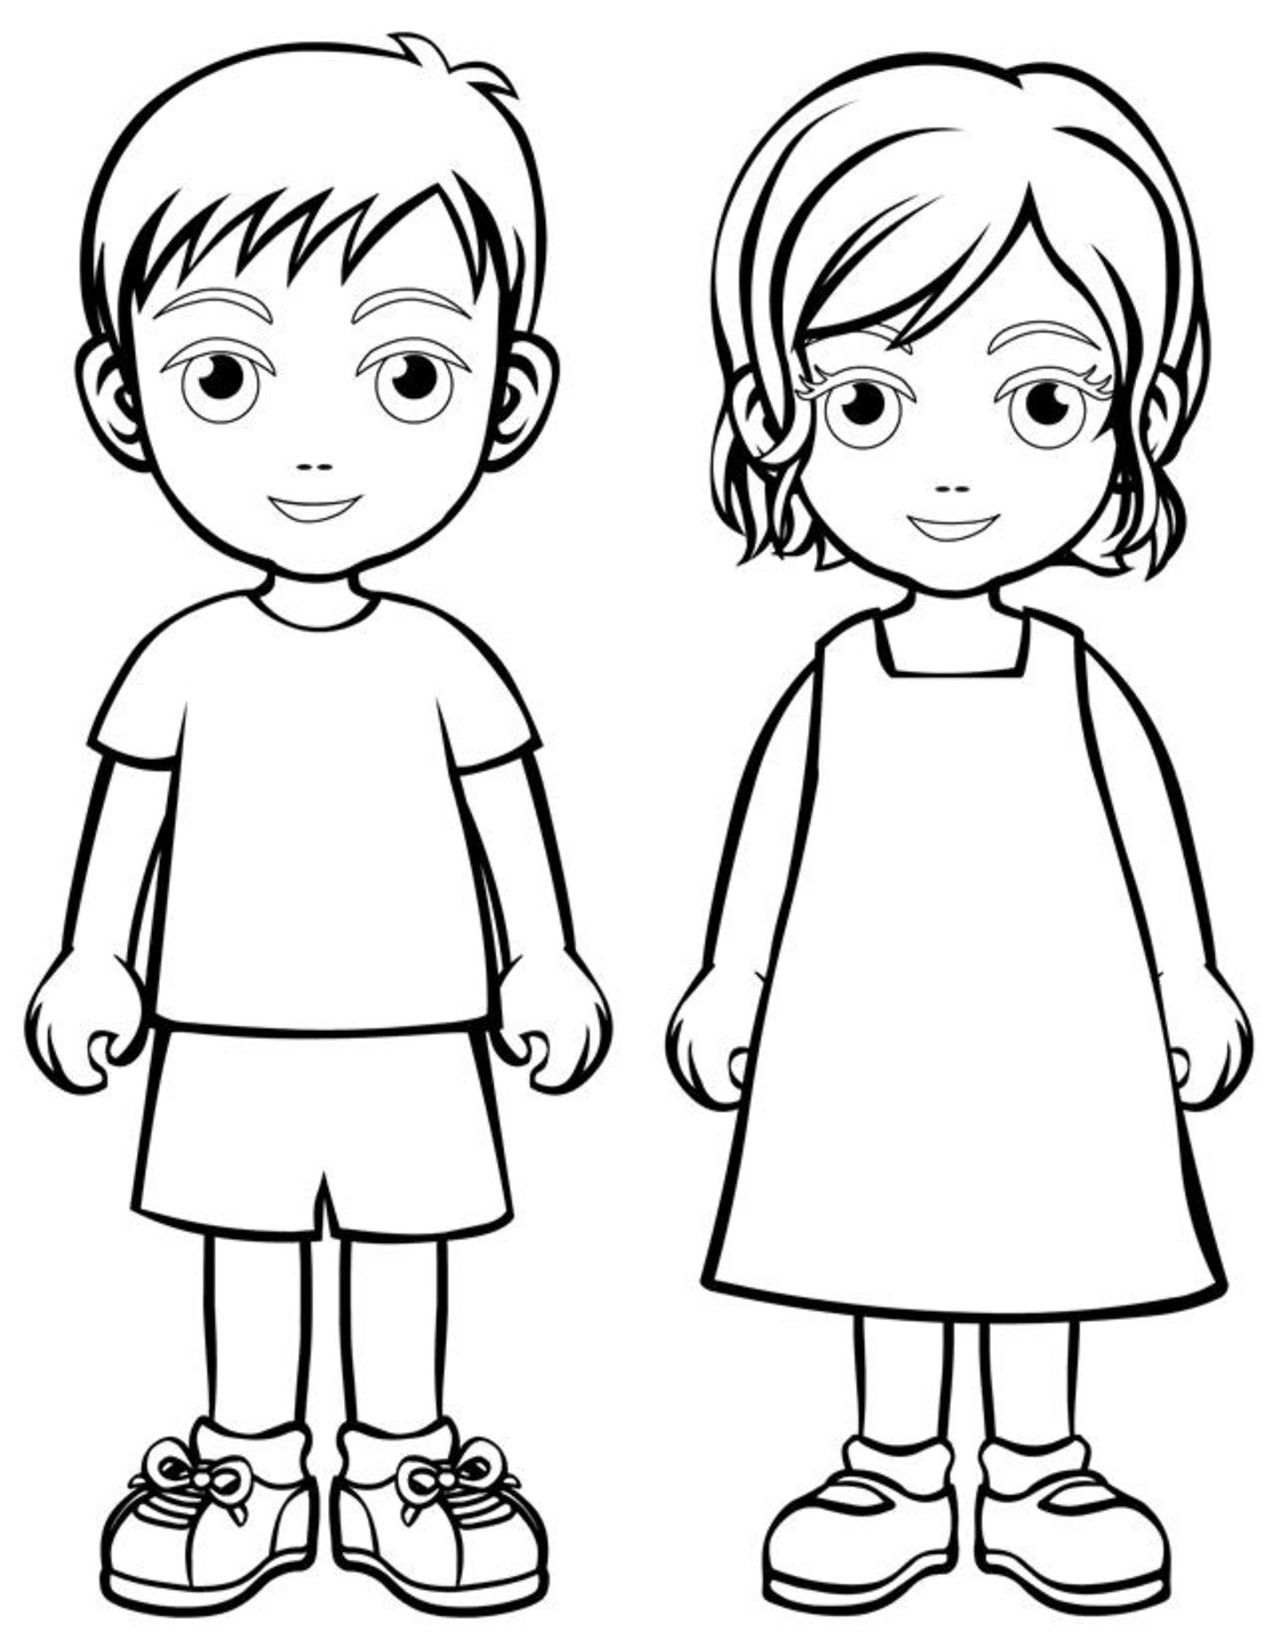 People And Places Coloring Pages Boy And Girl Thiệp Bạn Trai Trẻ Em